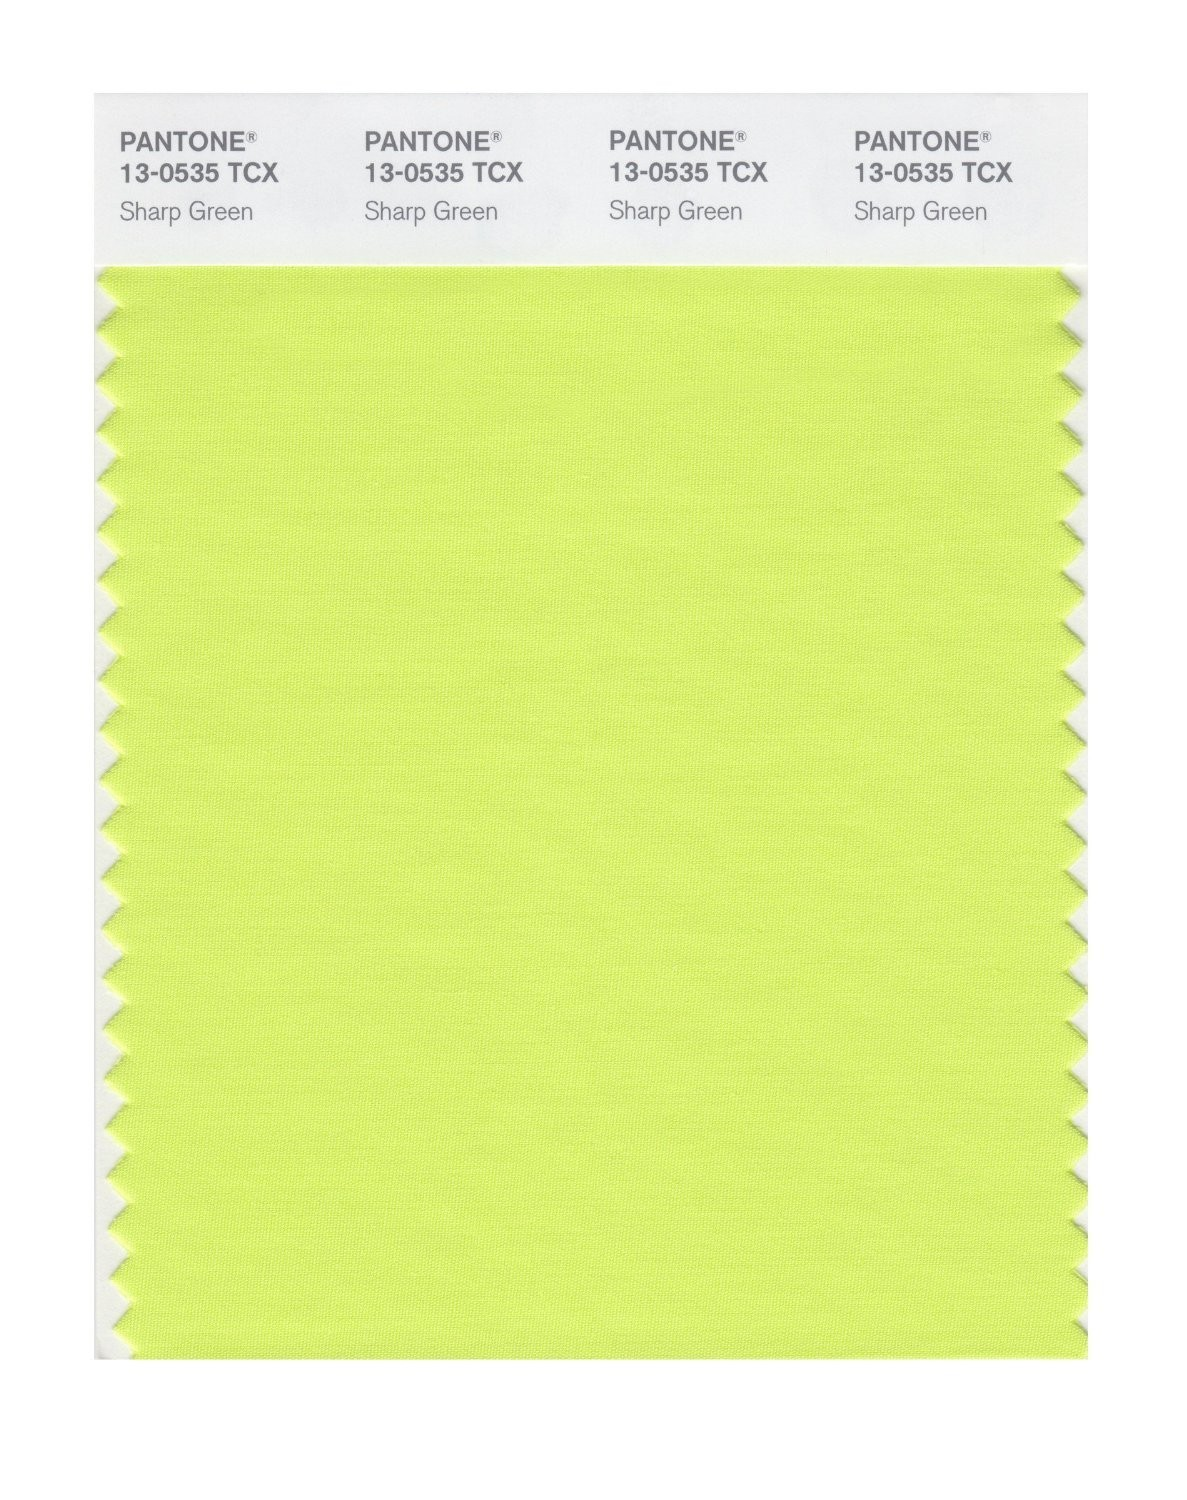 Pantone 13-0535 TCX Swatch Card Sharp Green